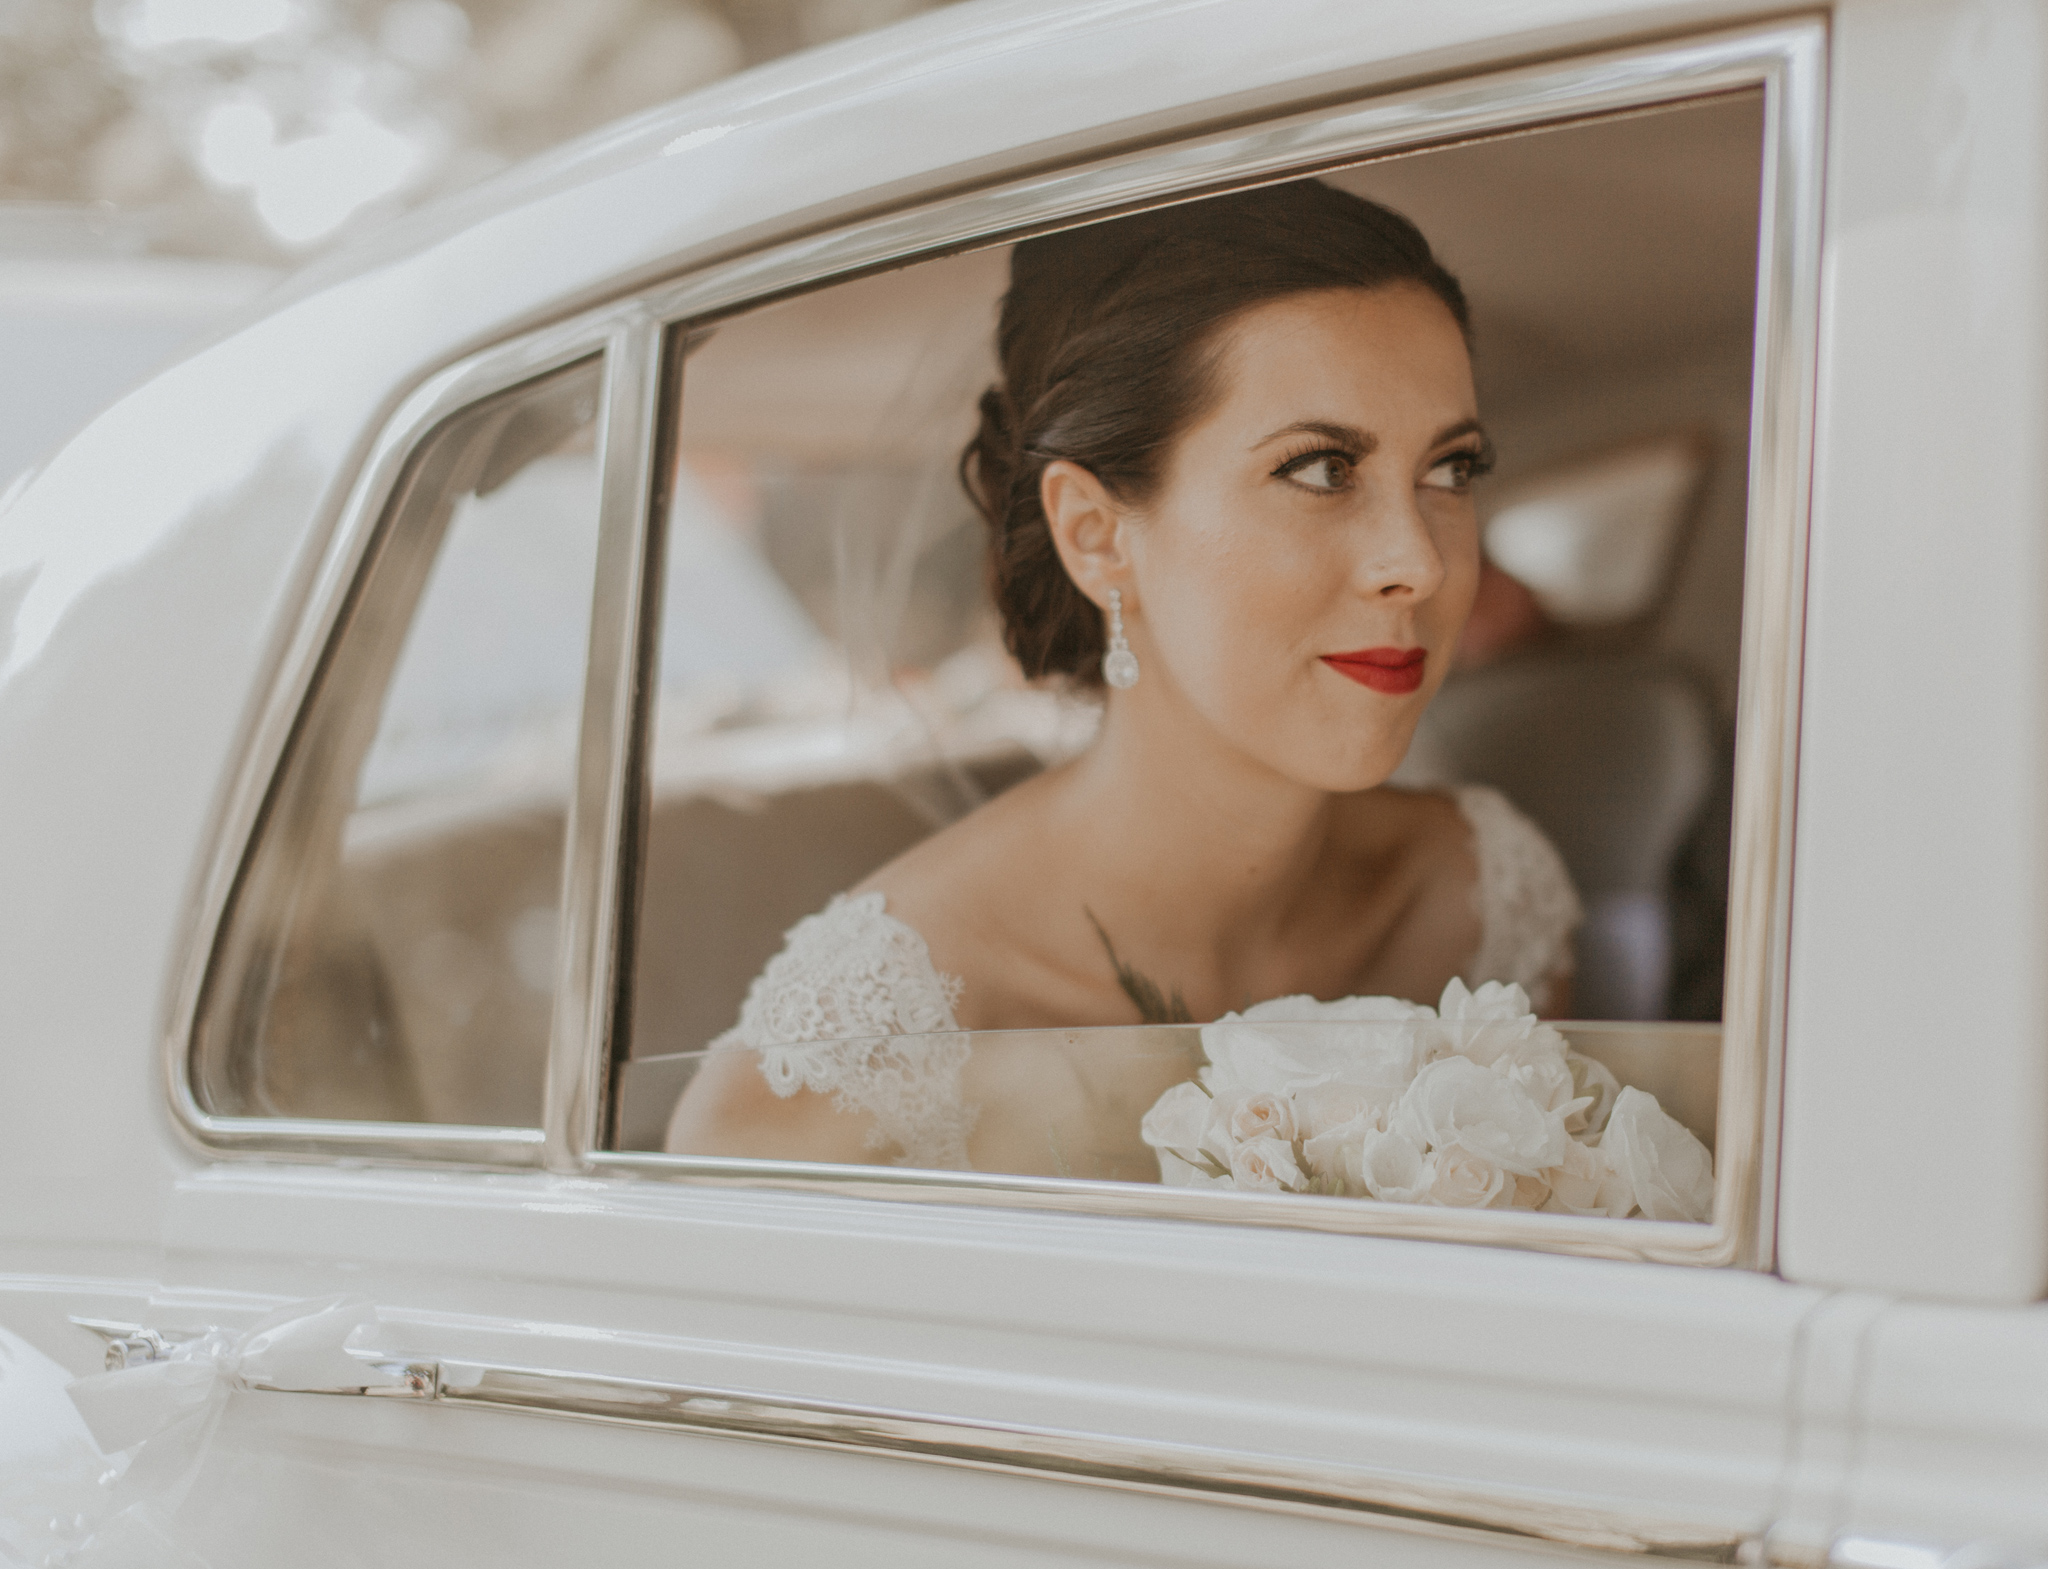 Picture of bride in car window on wedding day